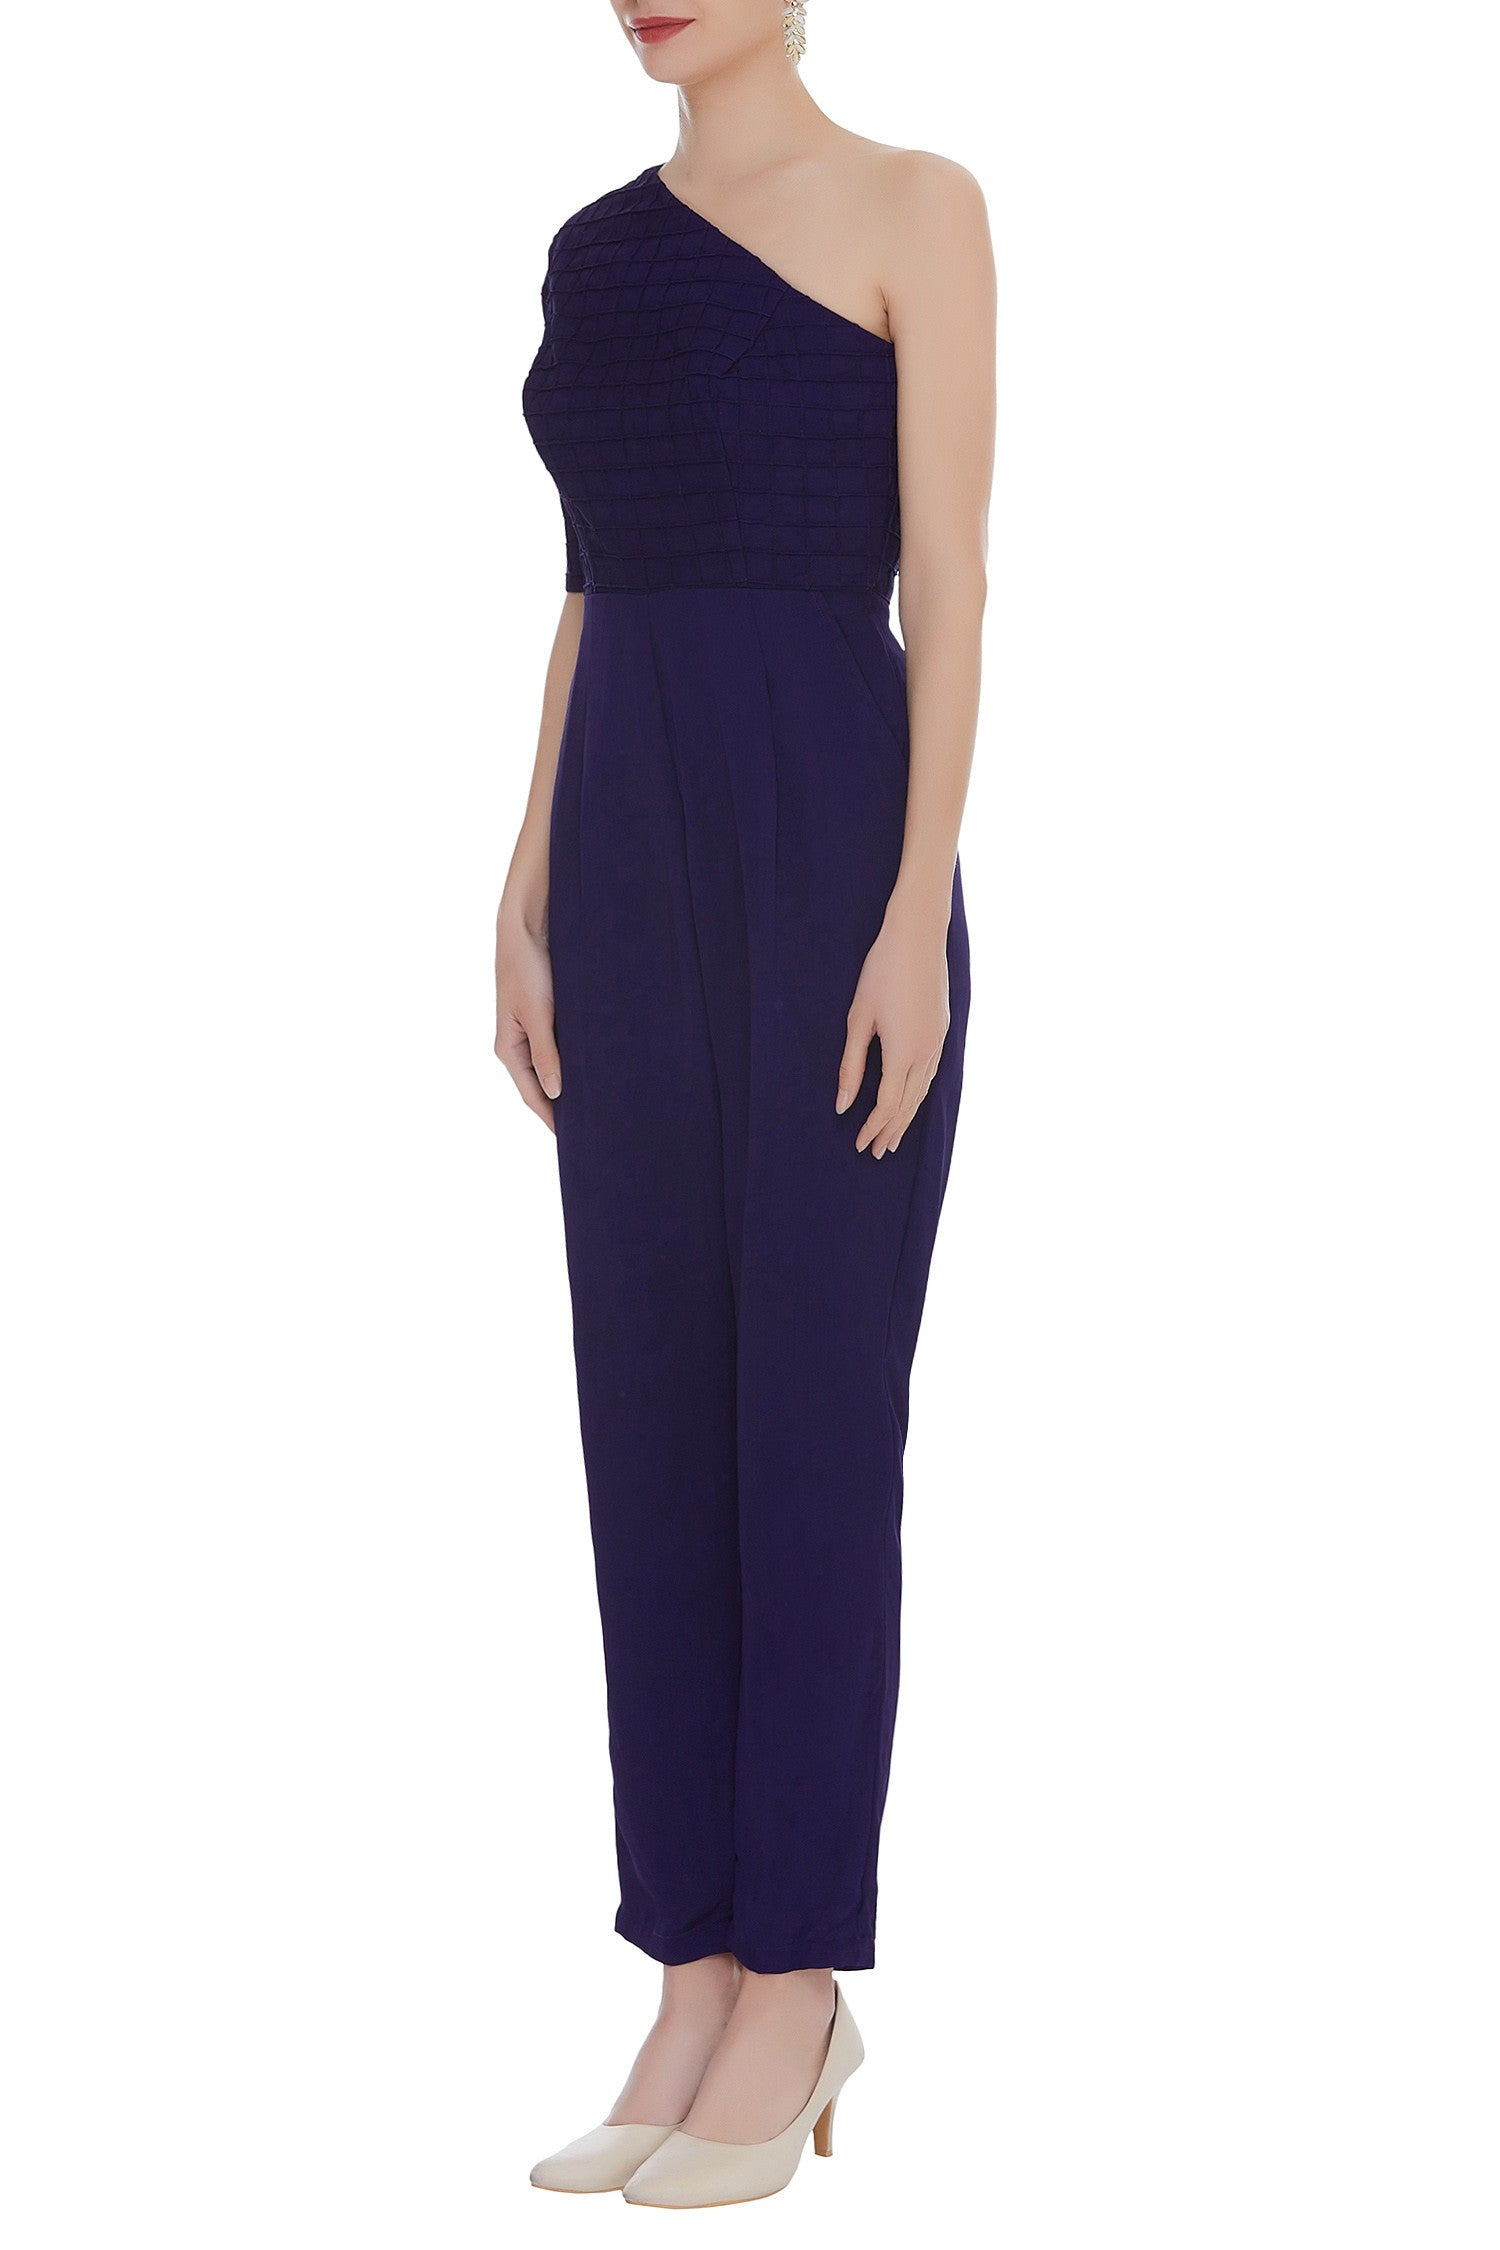 One shoulder Solid Dyed Jumpsuit